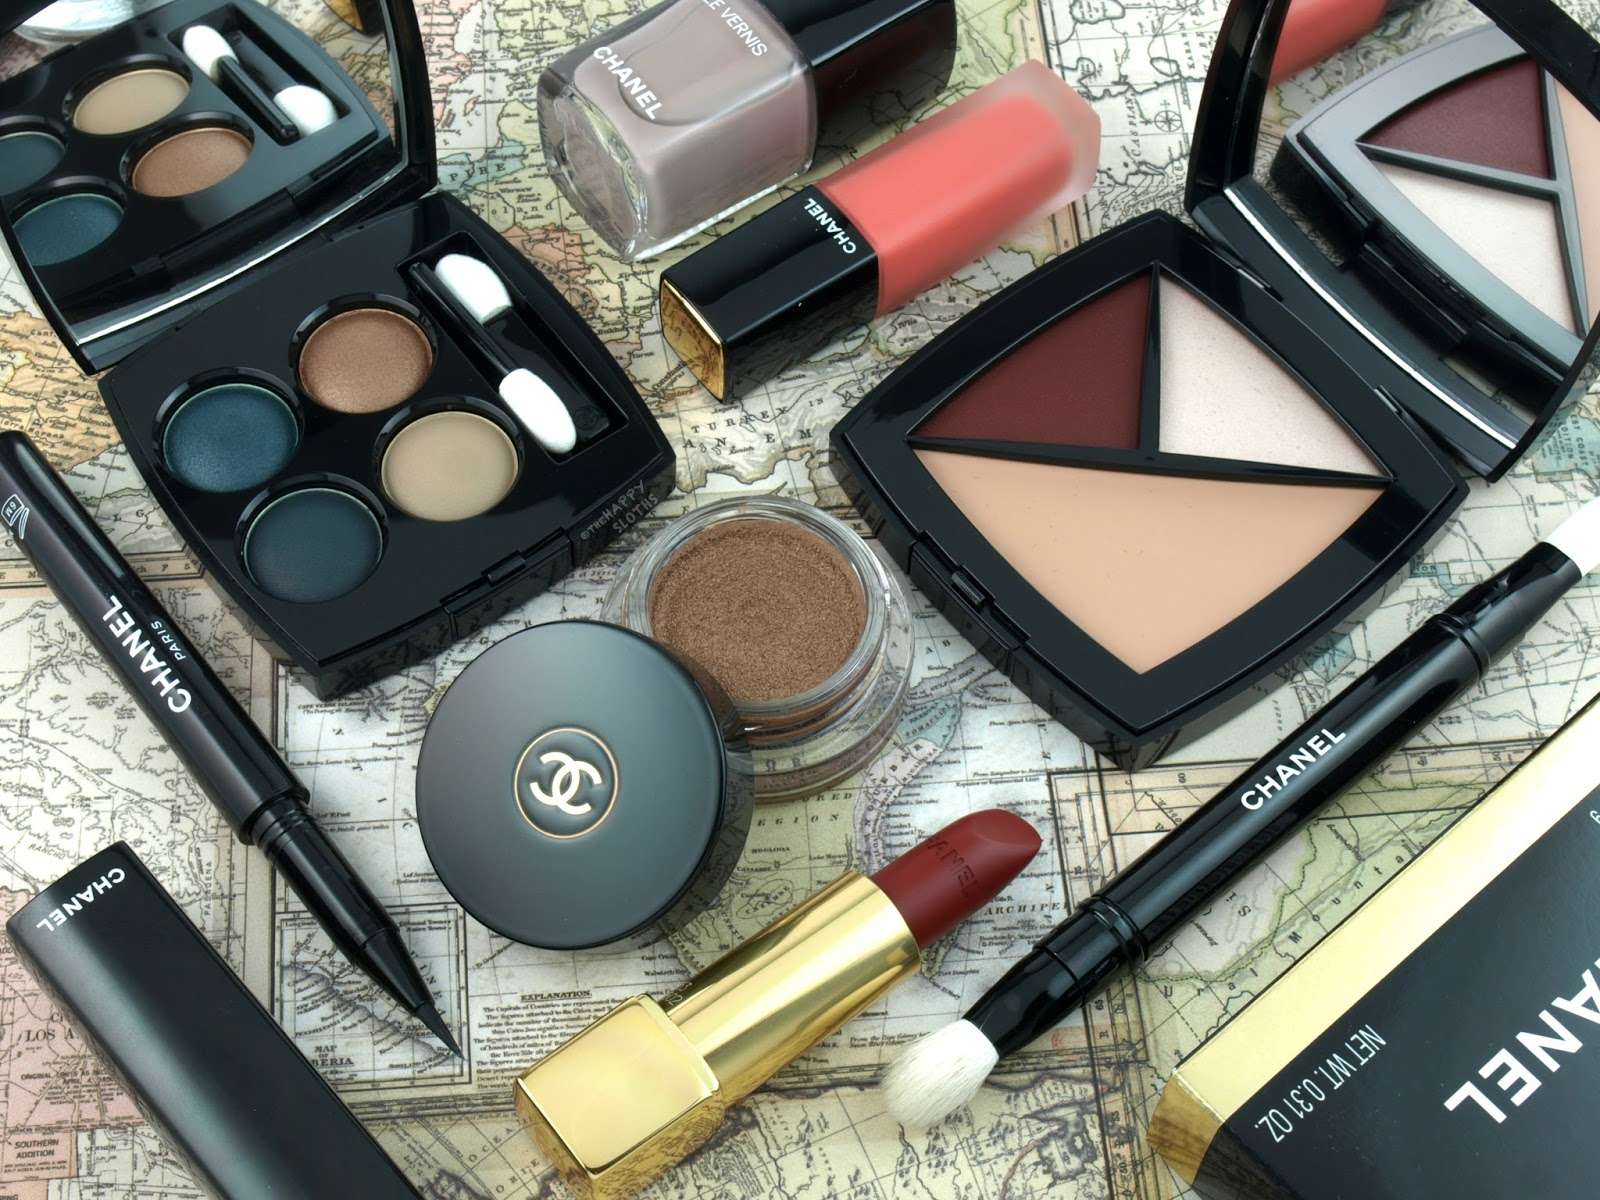 Chanel Fall 2017 Travel Diary Collection: Review and Swatches